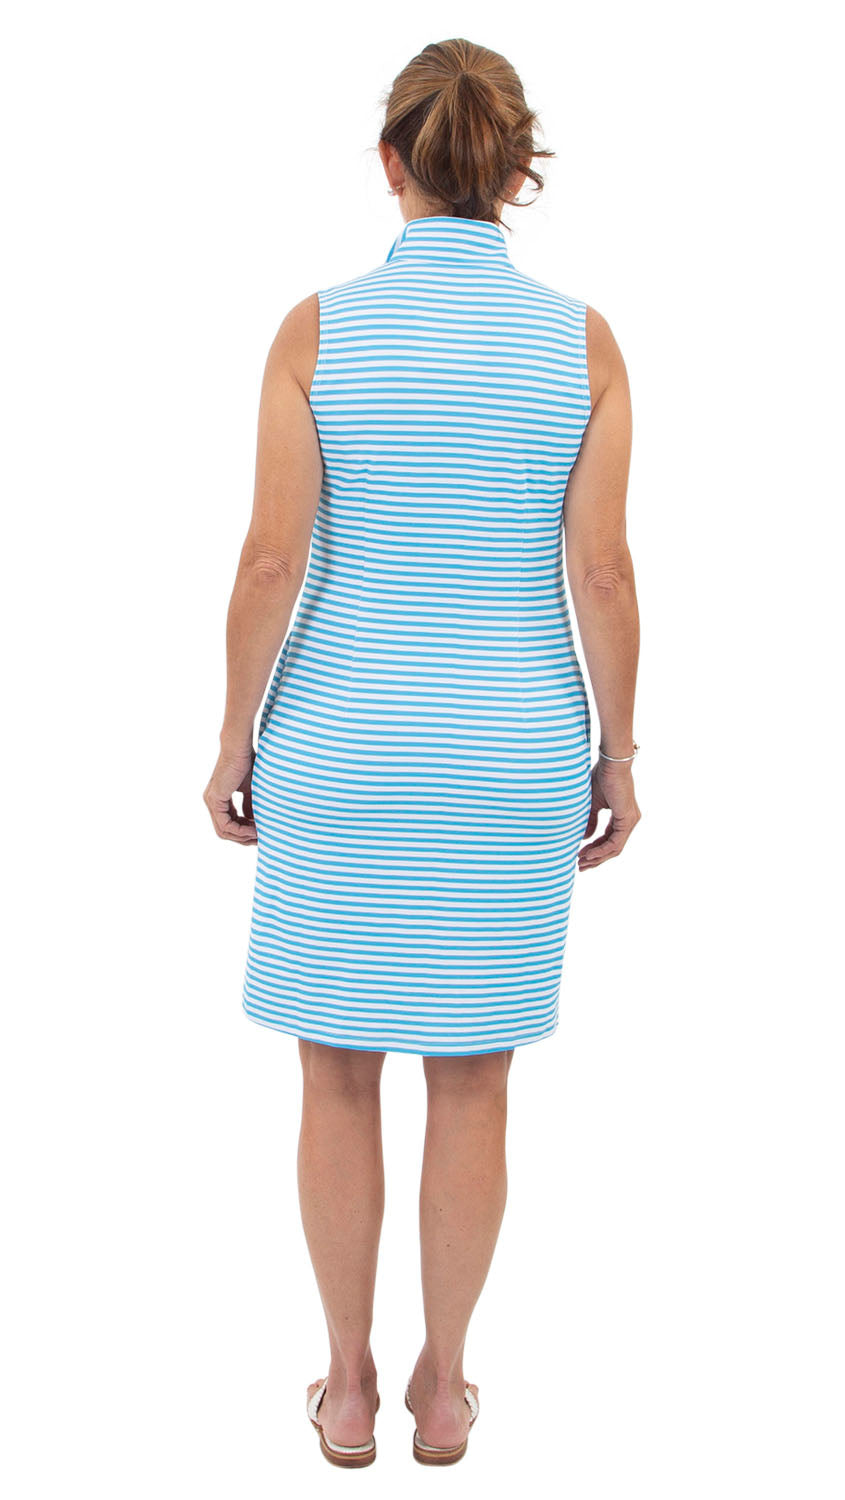 Britt Dress Sleeveless - Aquarius/White Stripe/Neon Pink Collar